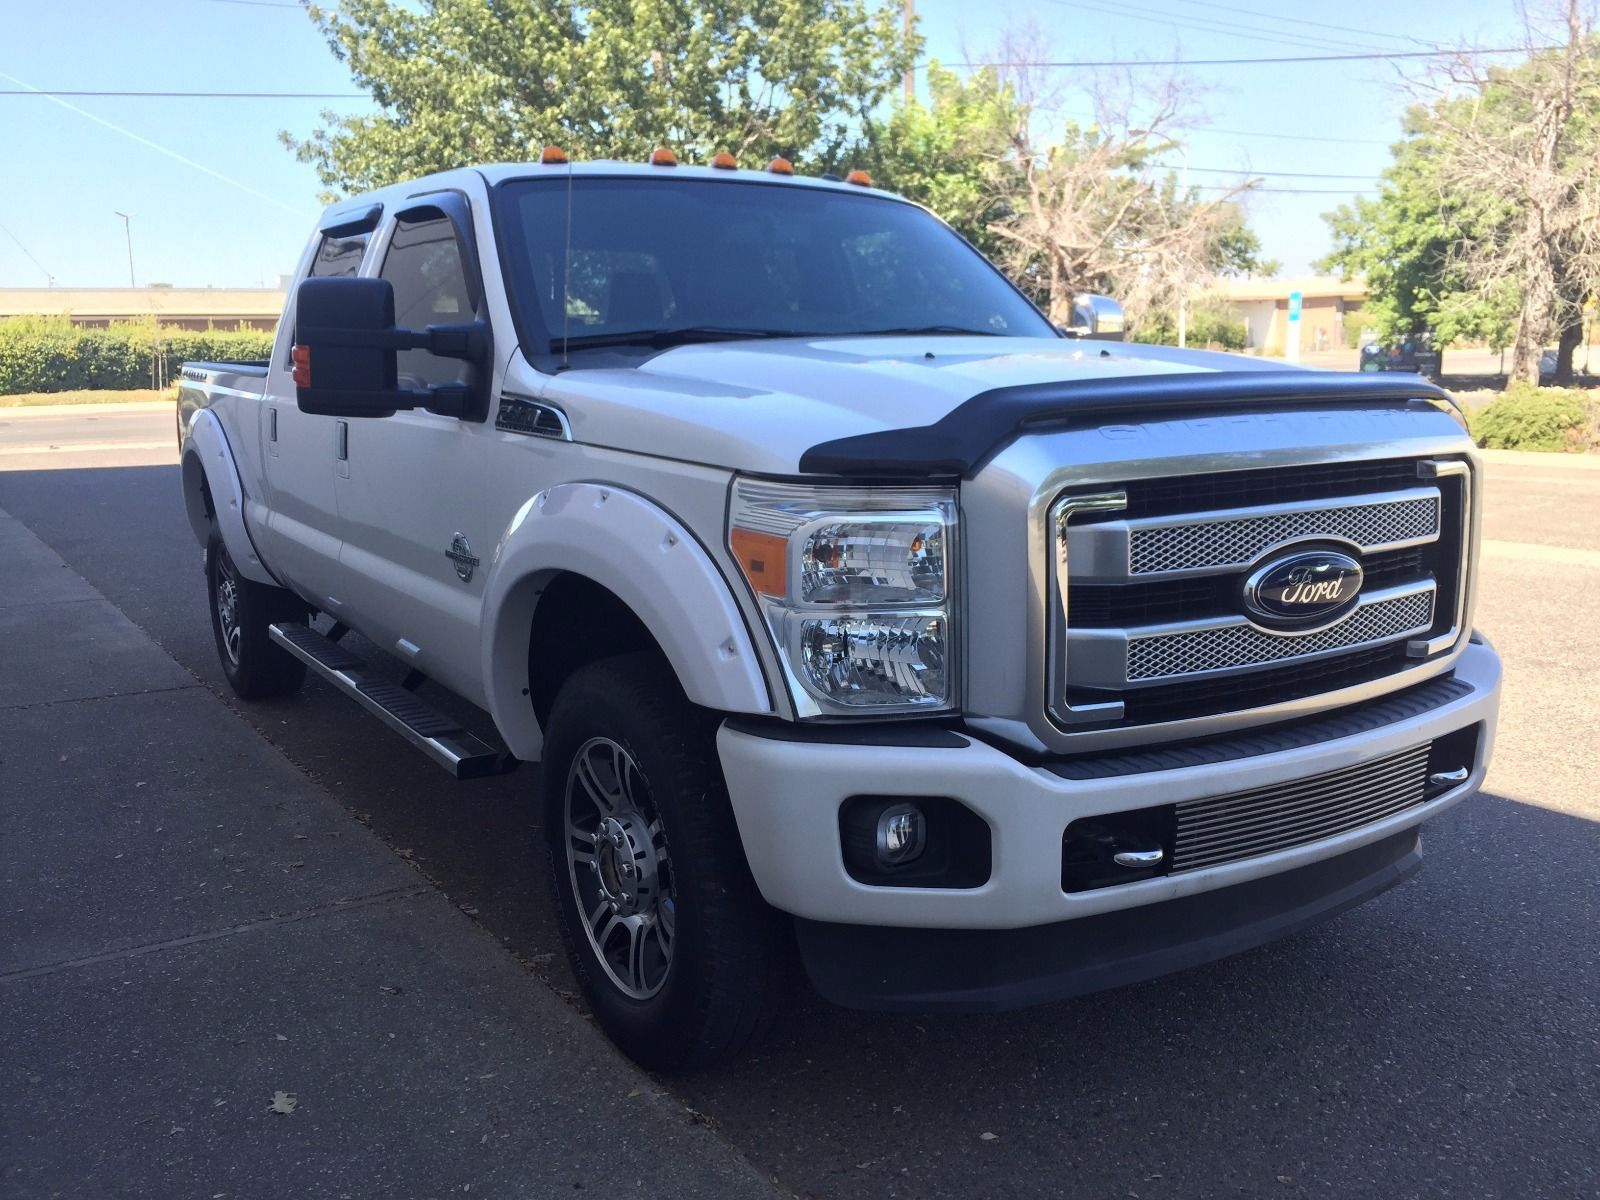 2014 f 250 ford diesel mileage autos post. Black Bedroom Furniture Sets. Home Design Ideas